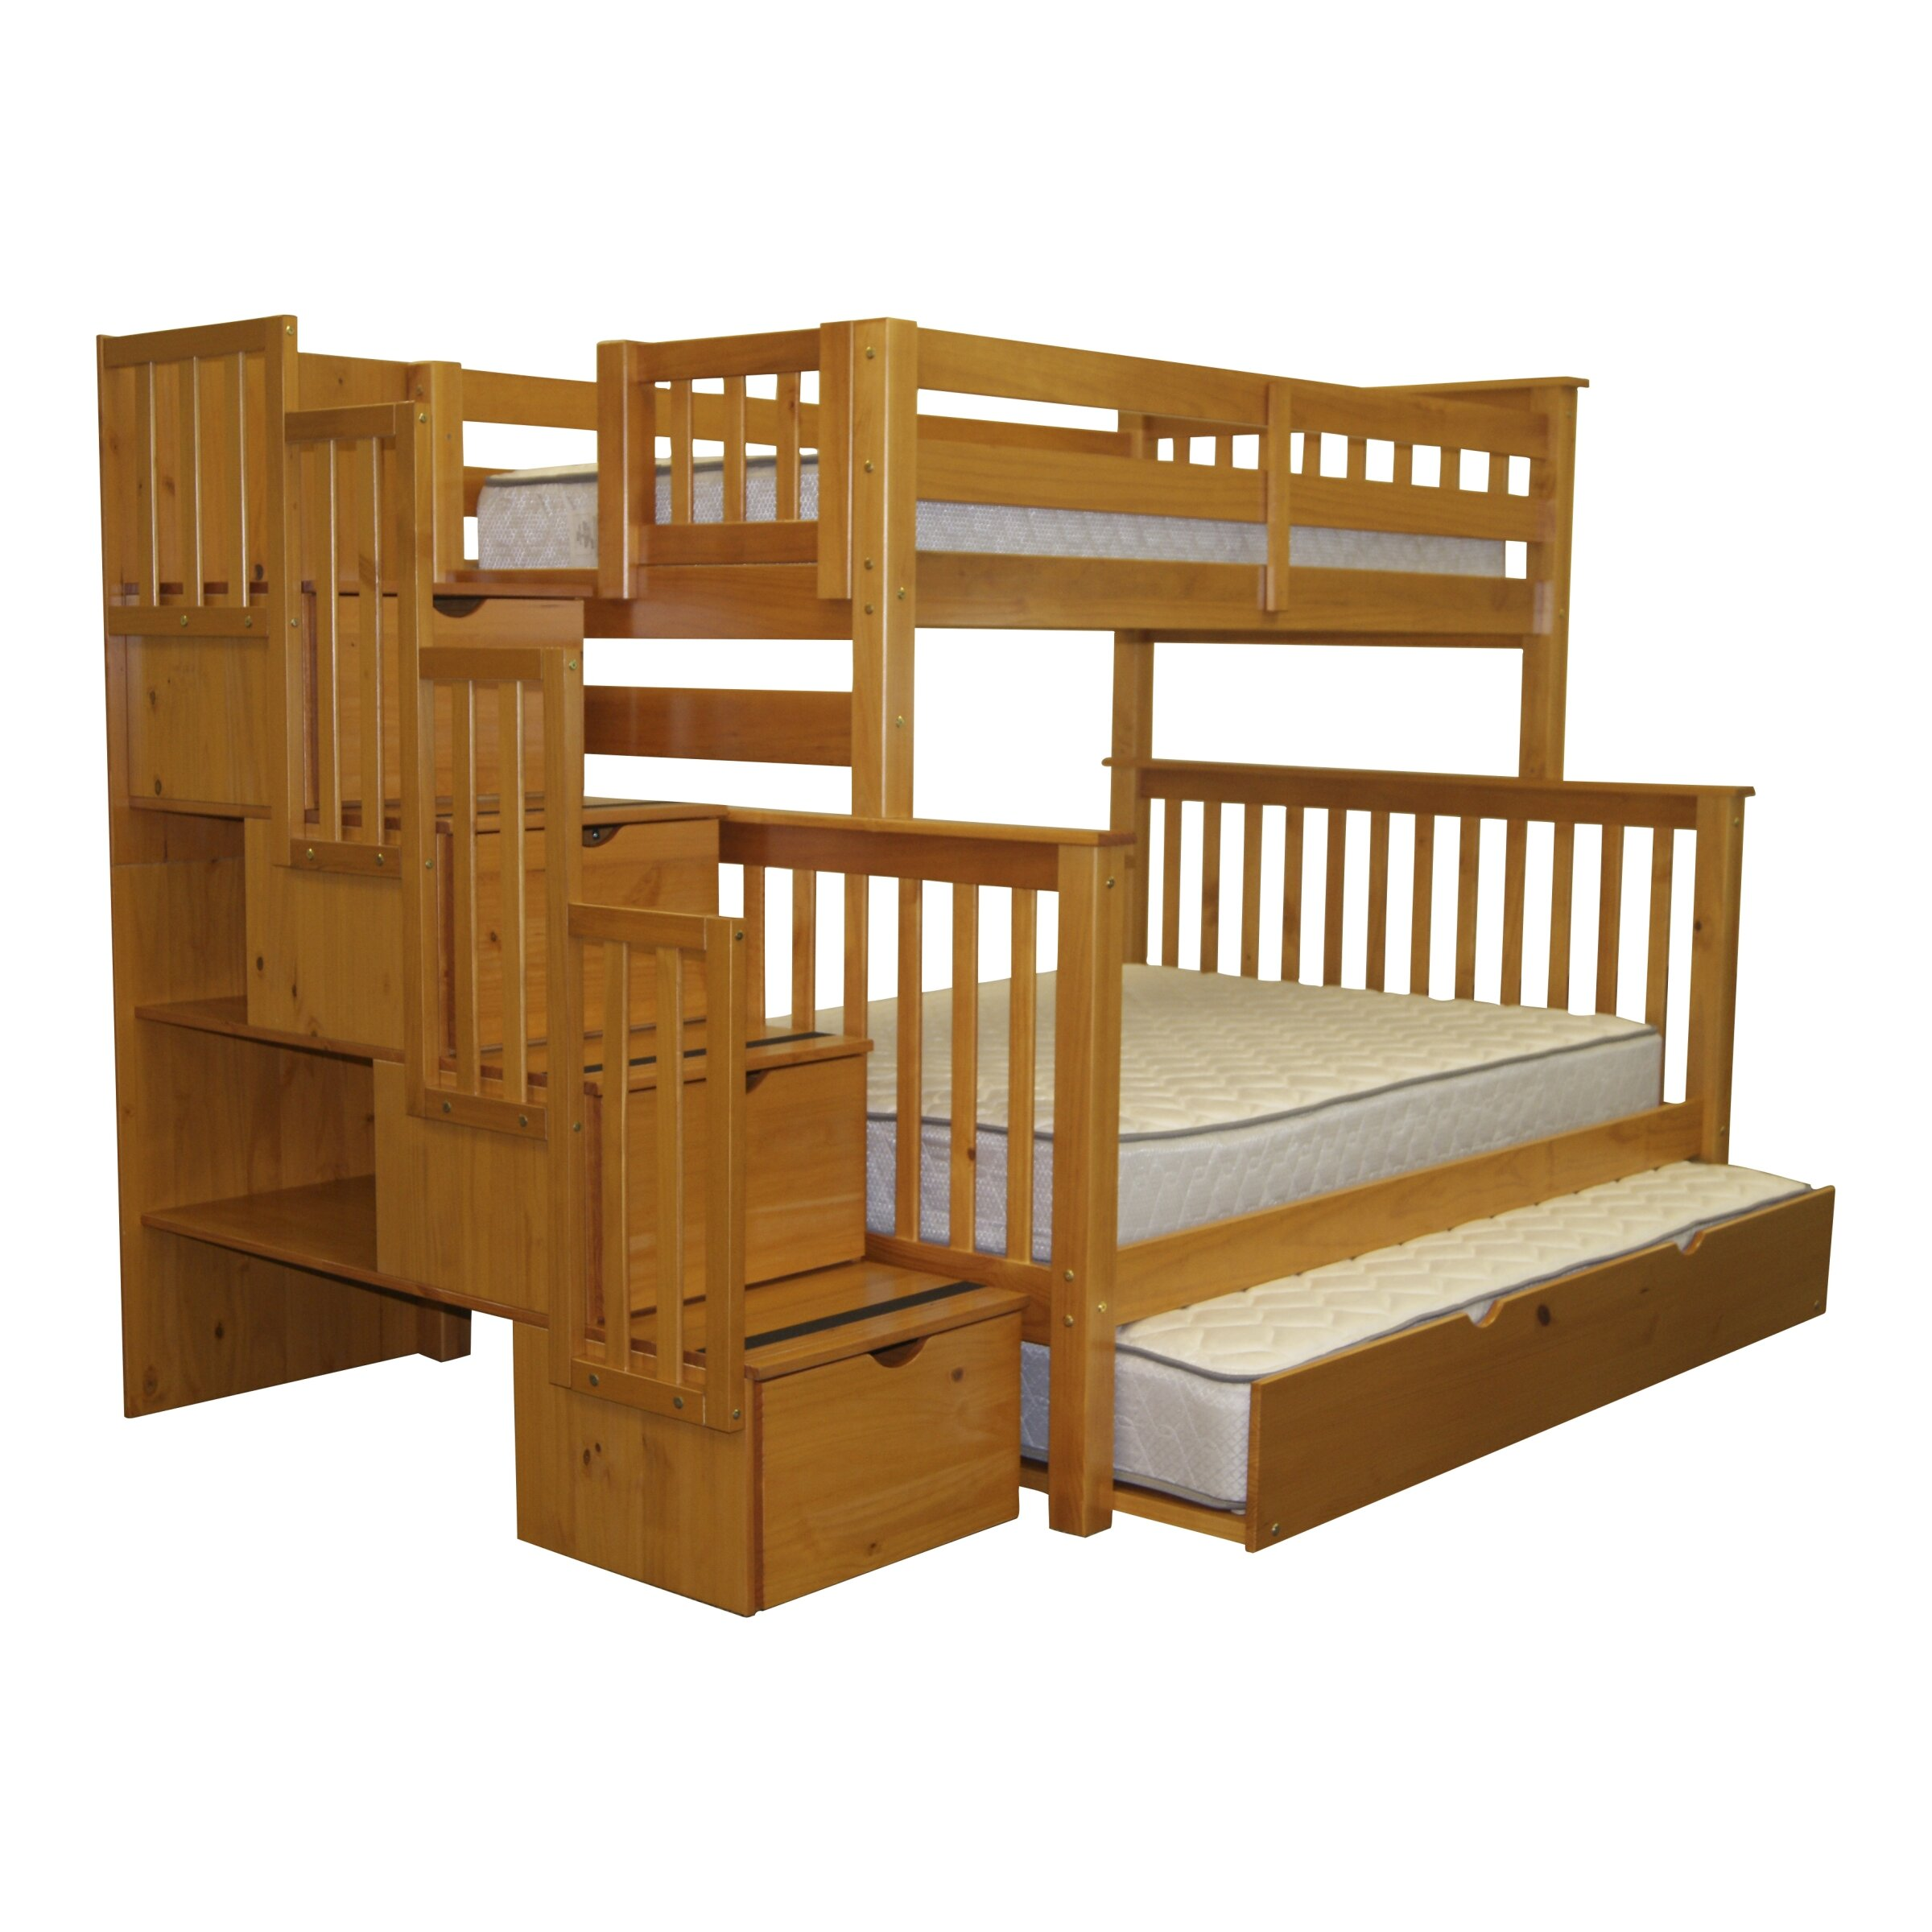 Bedz king twin over full bunk bed with trundle reviews for King size bunk bed